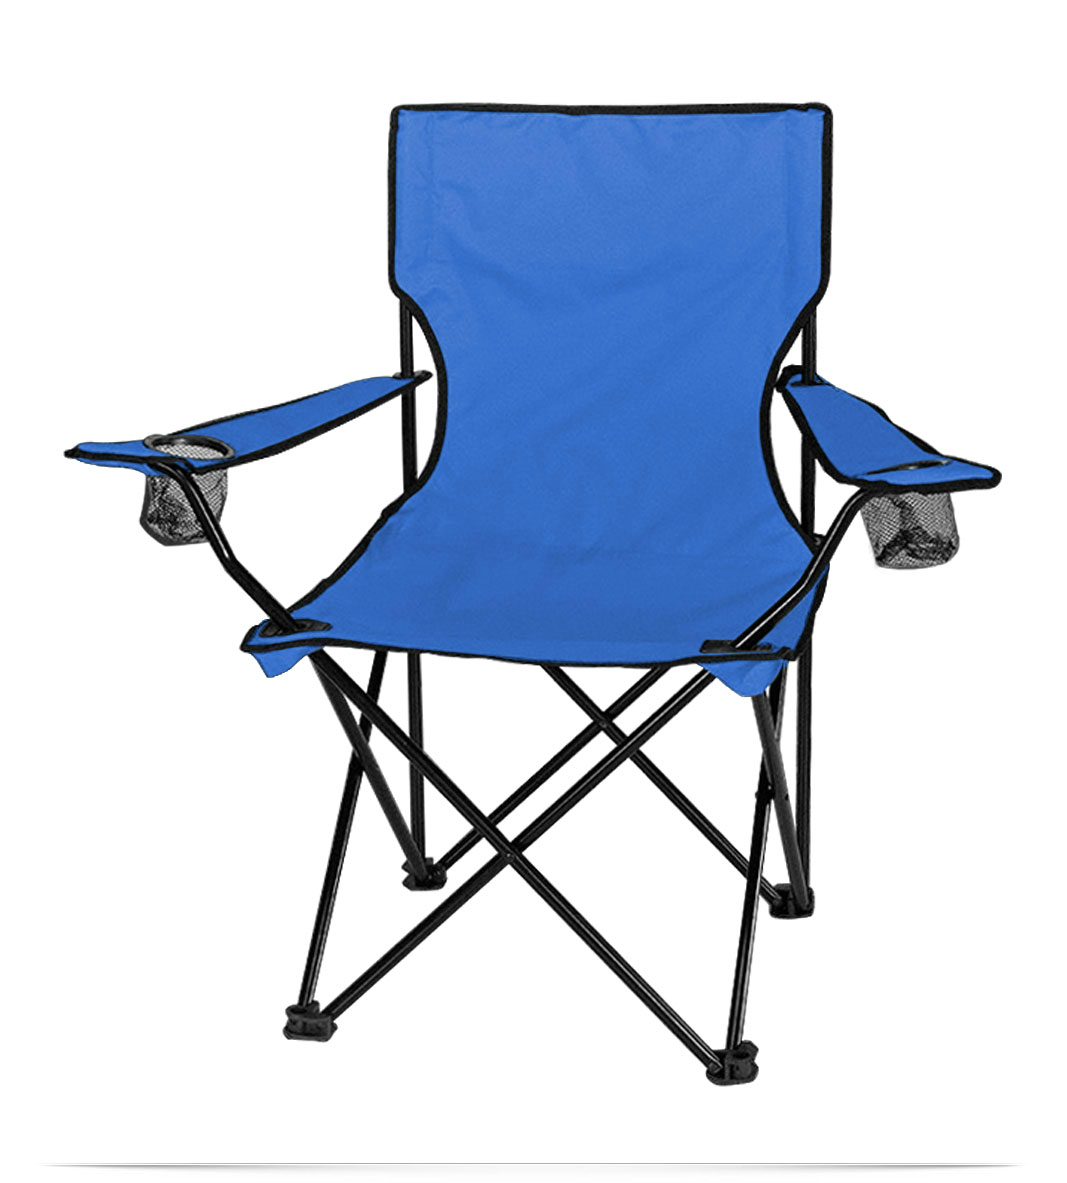 folding camping chairs home / promotional products / camping folding chairs FWGSIQG